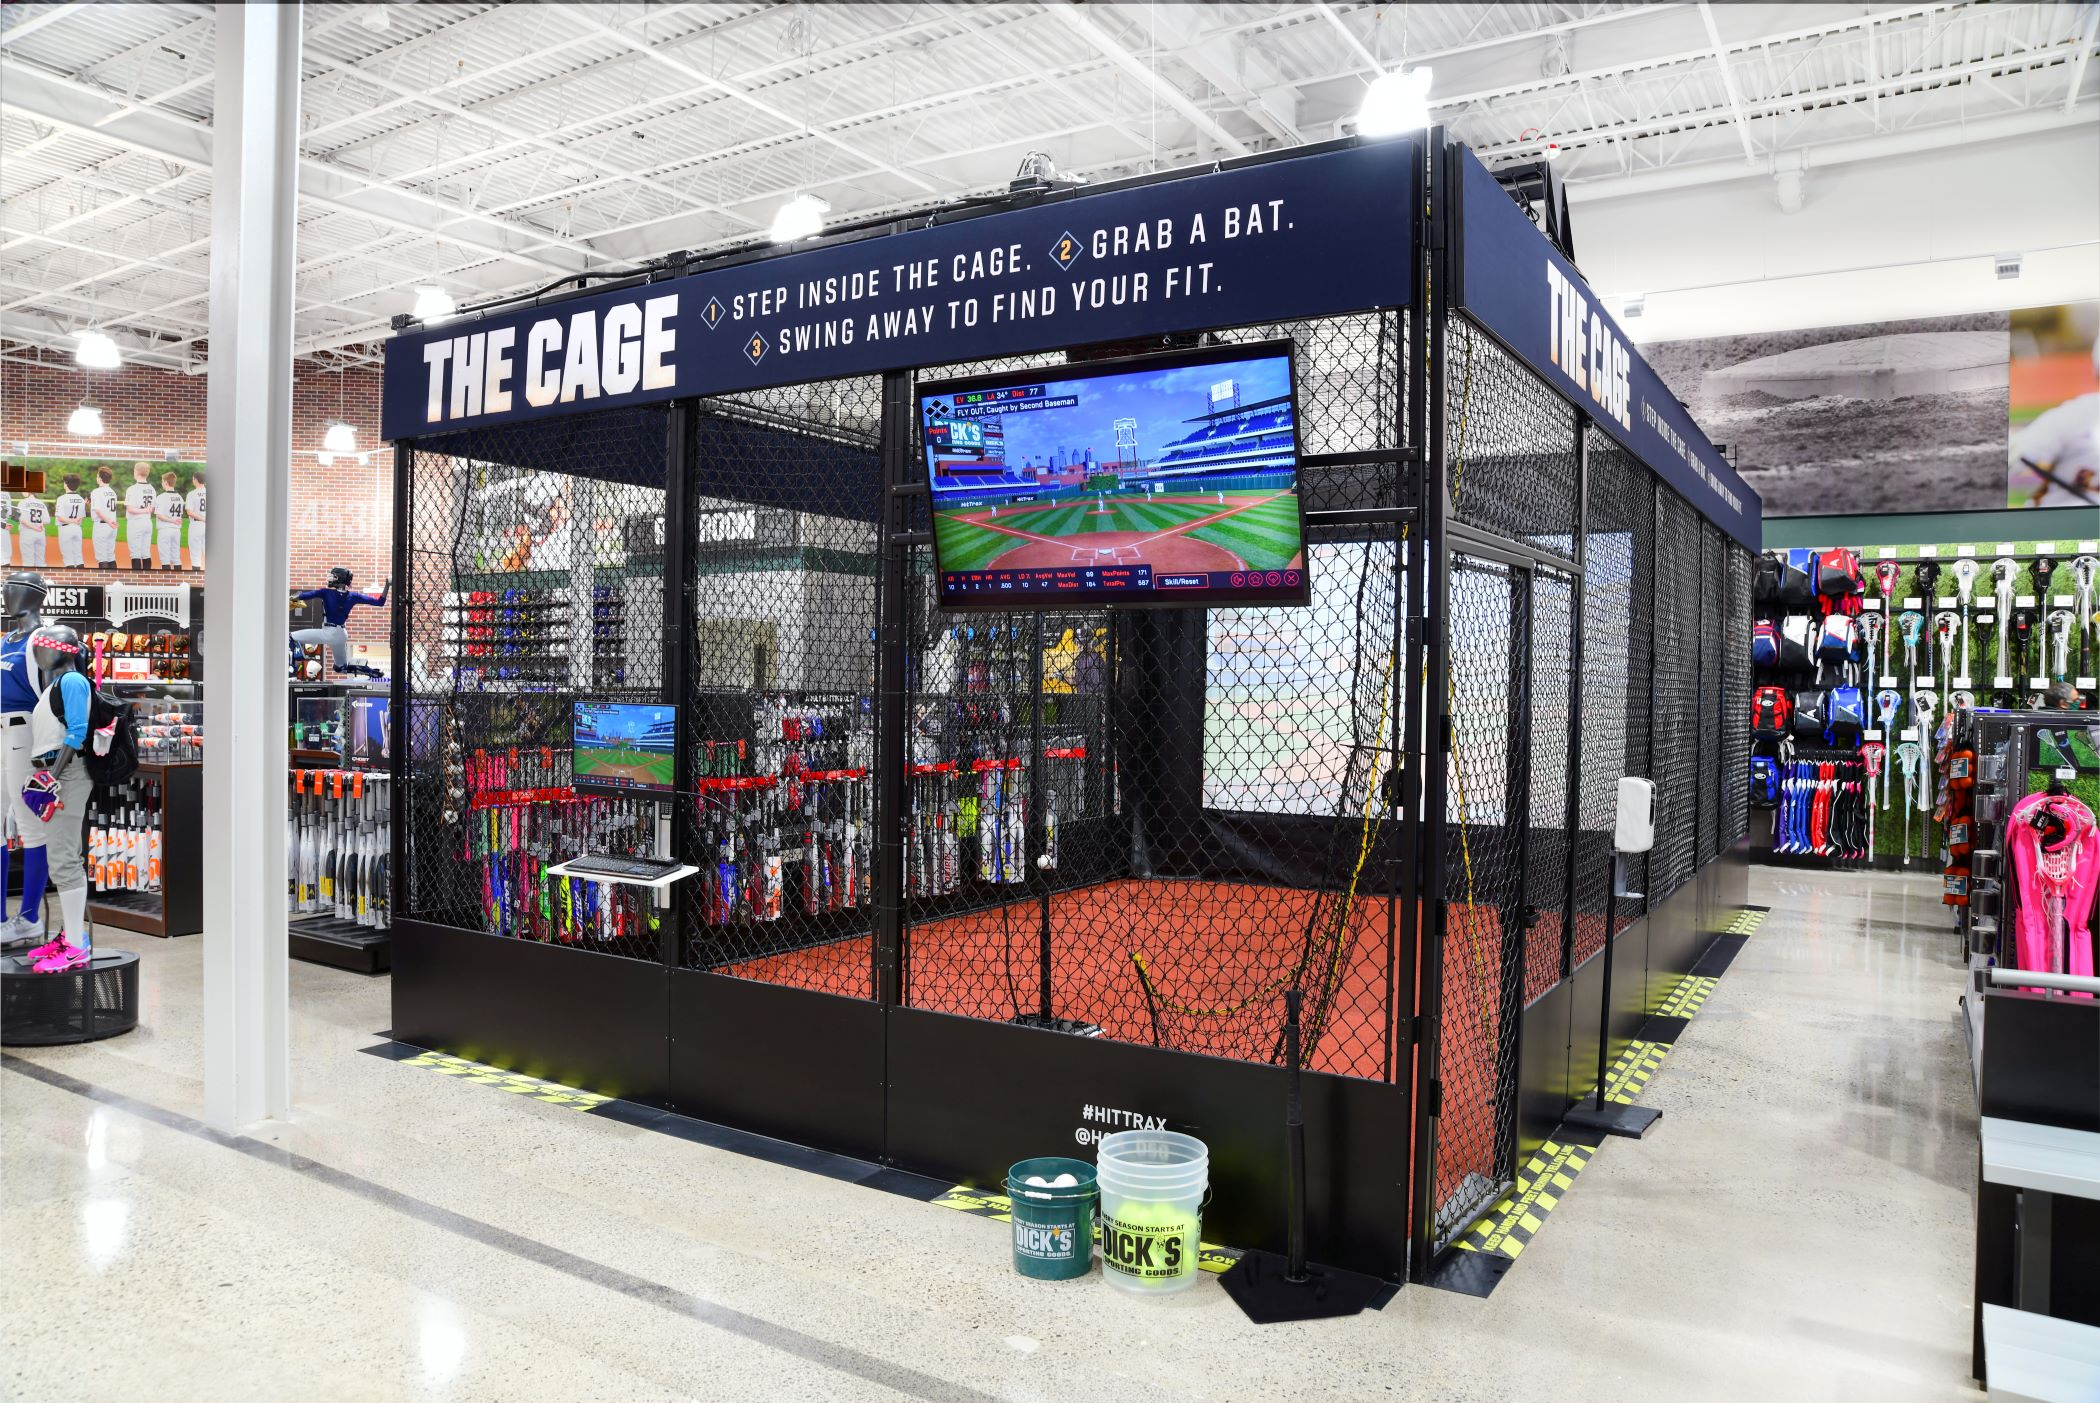 Dick?s Sporting Goods sees offering experiences such as high-tech batting cages in stores as the future of retail. (Dick?s Sporting Goods)